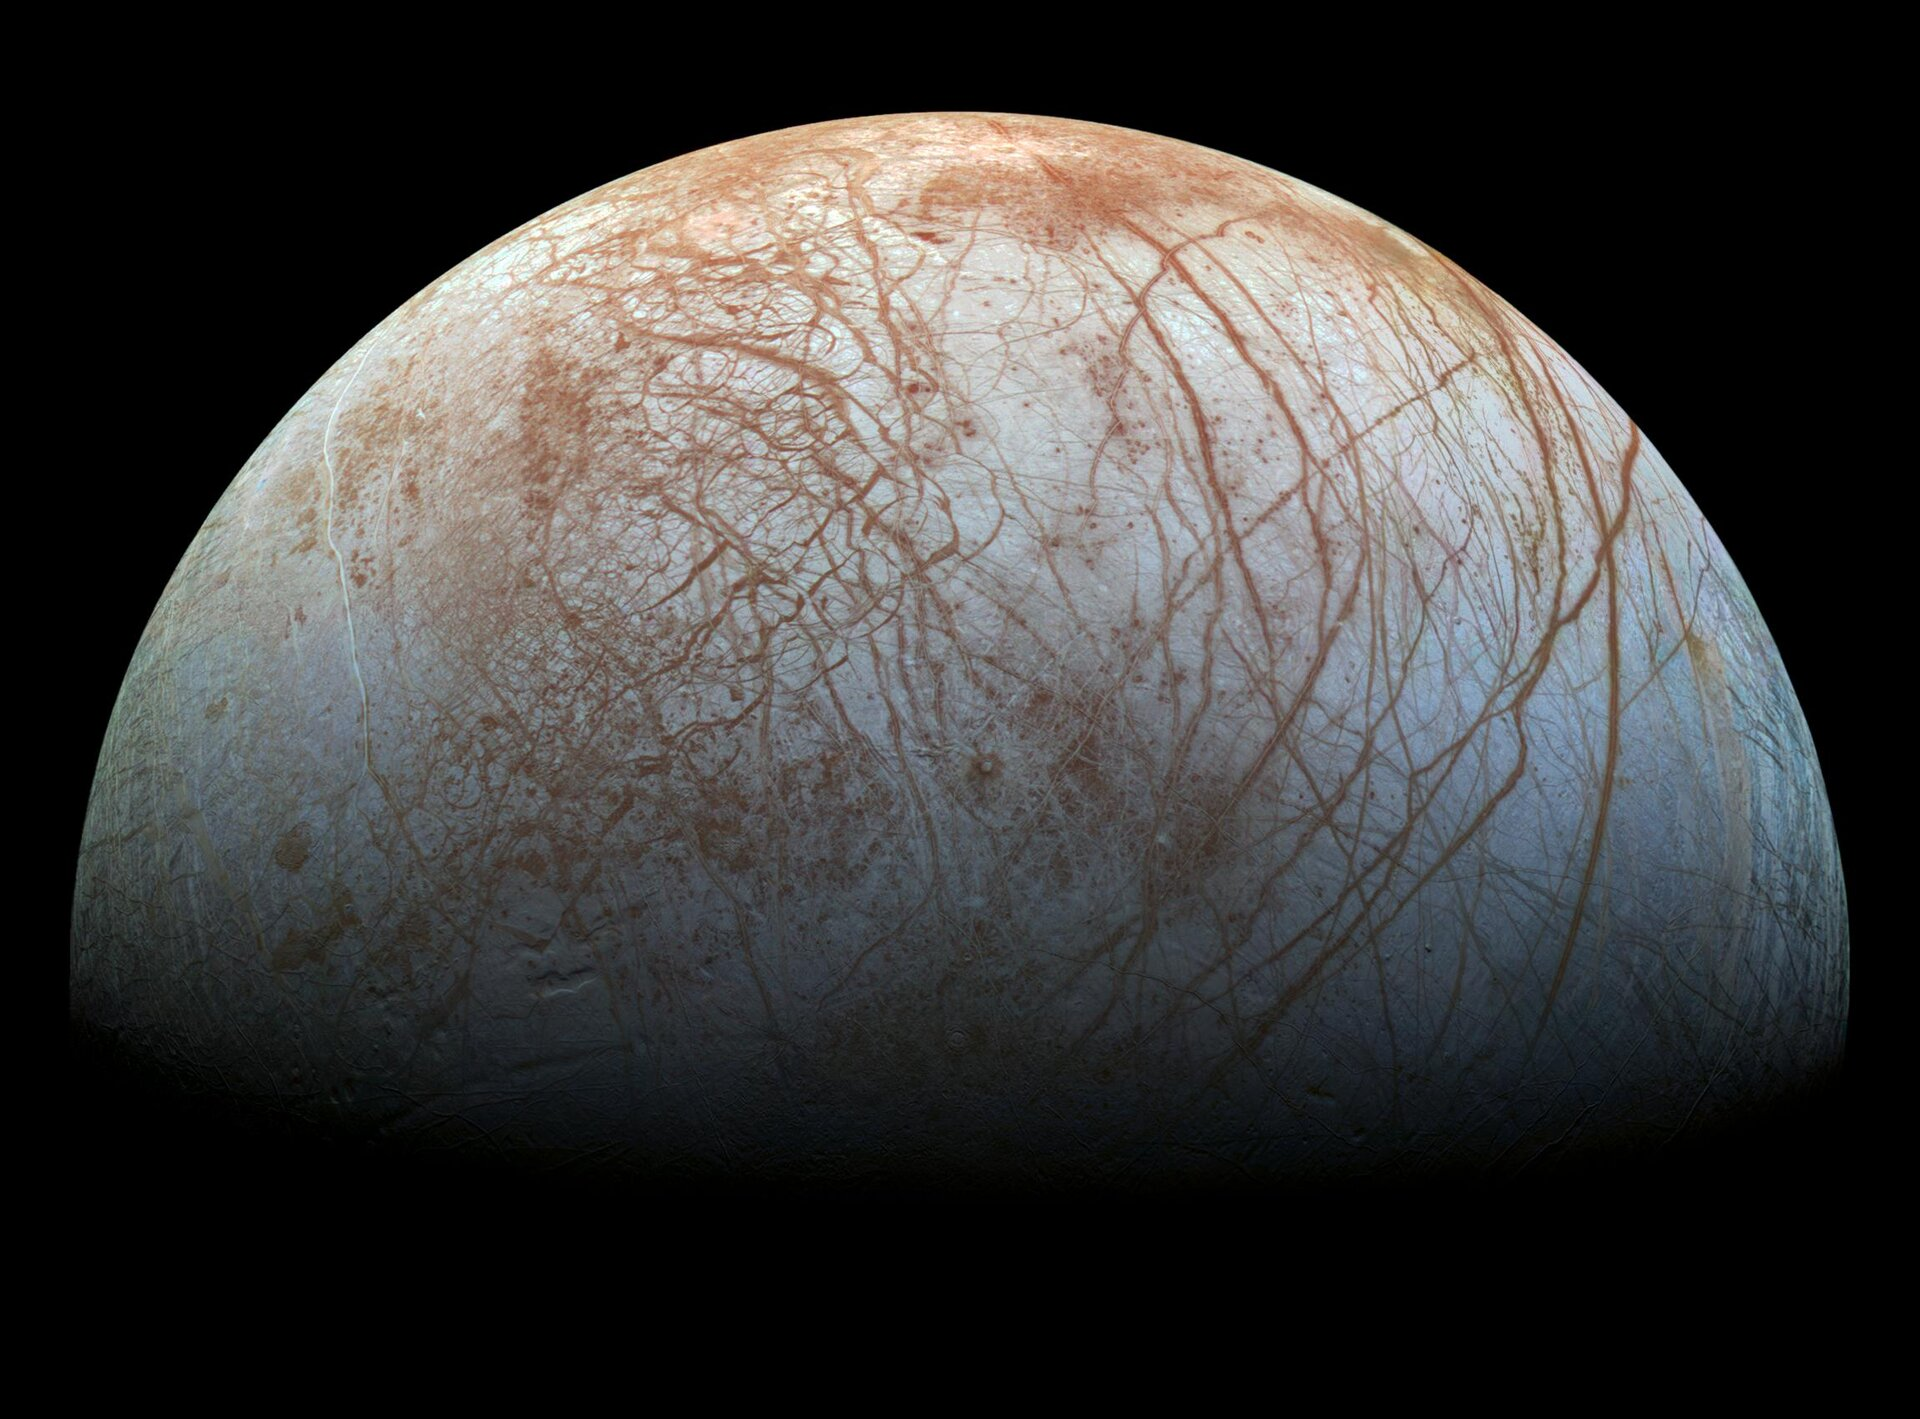 Europa volcanism & interior heating modeled in detail, offers research targets for upcoming missions - NASASpaceFlight.com - NASASpaceflight.com